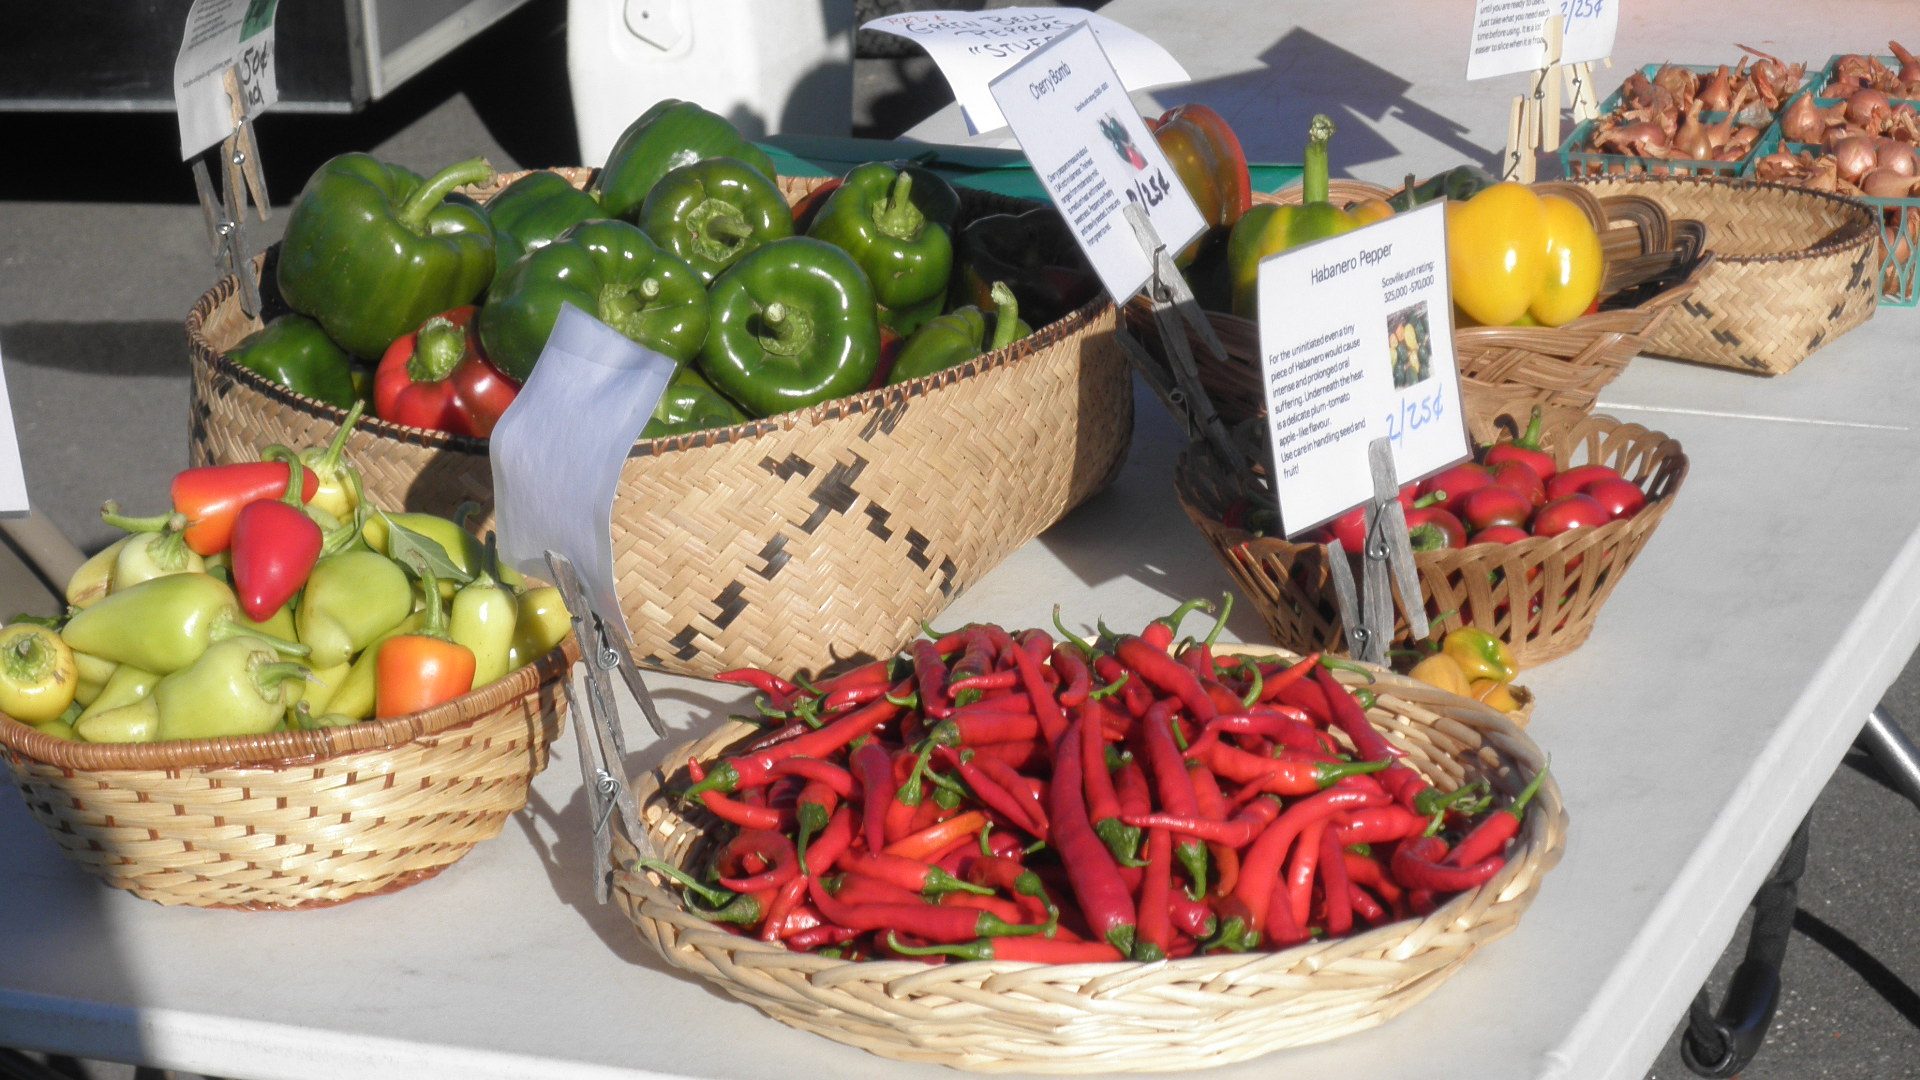 Fresh selection of peppers.